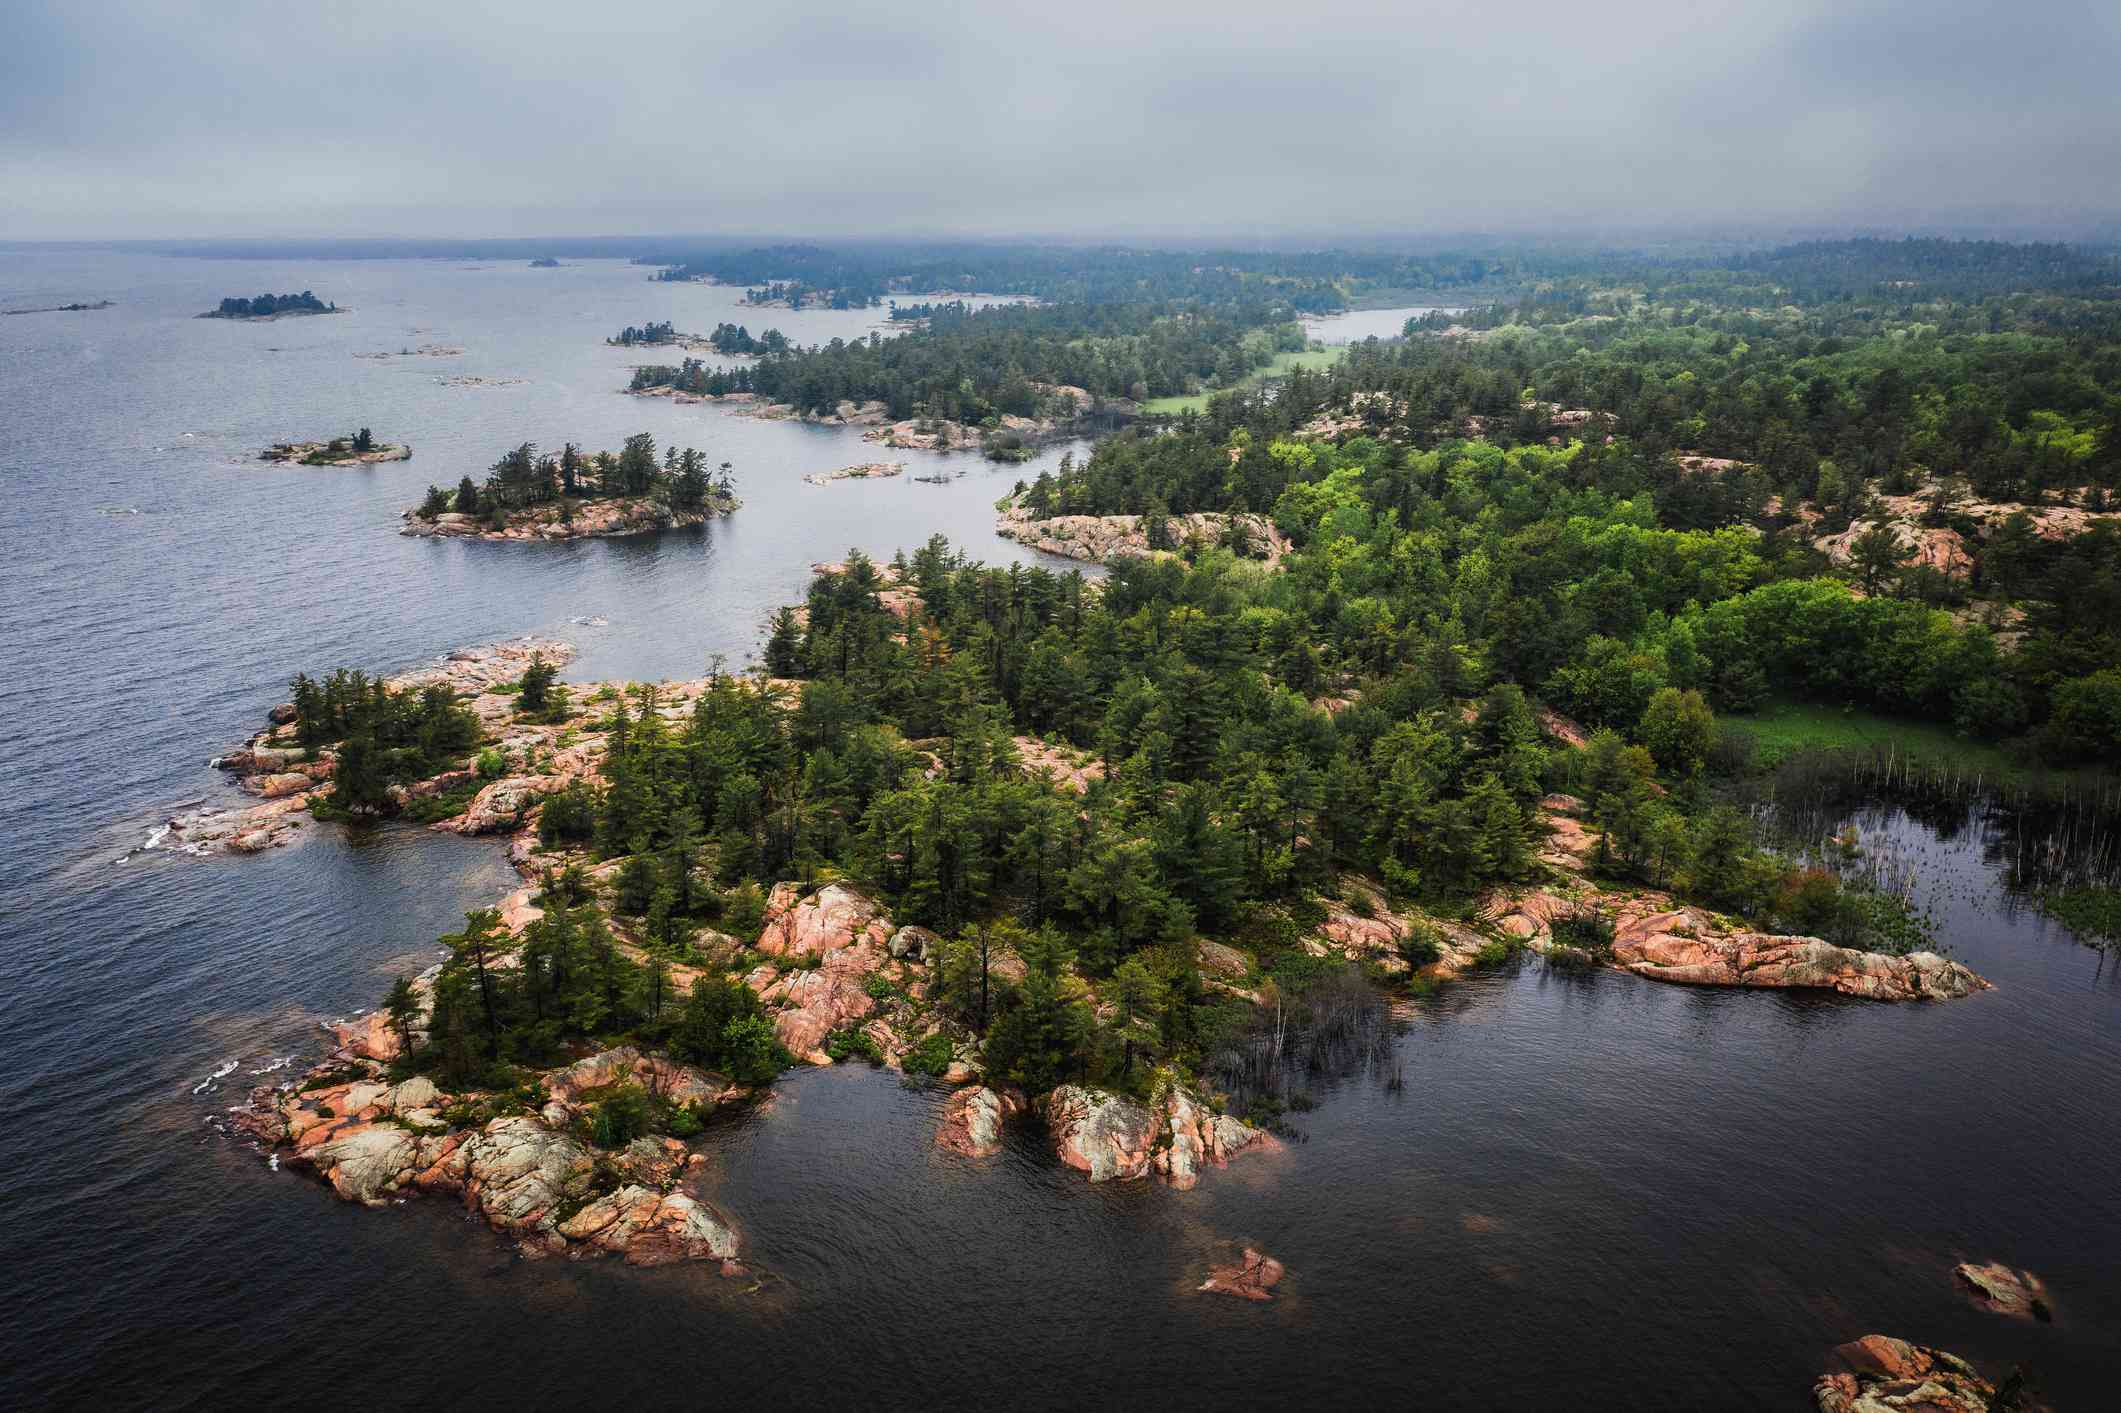 Aerial view of tree-topped rocky islands in Lake Huron